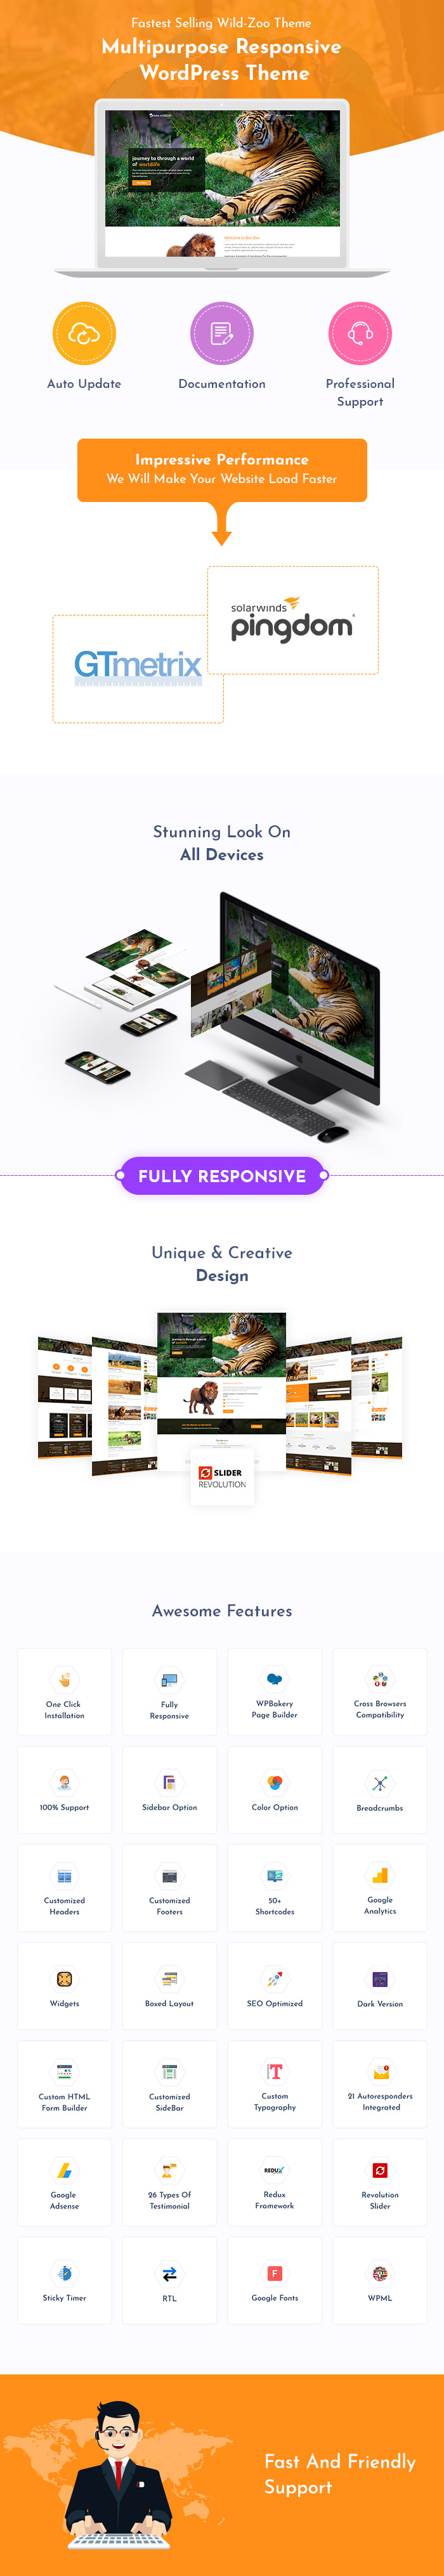 Wild Zoo WordPress Themes